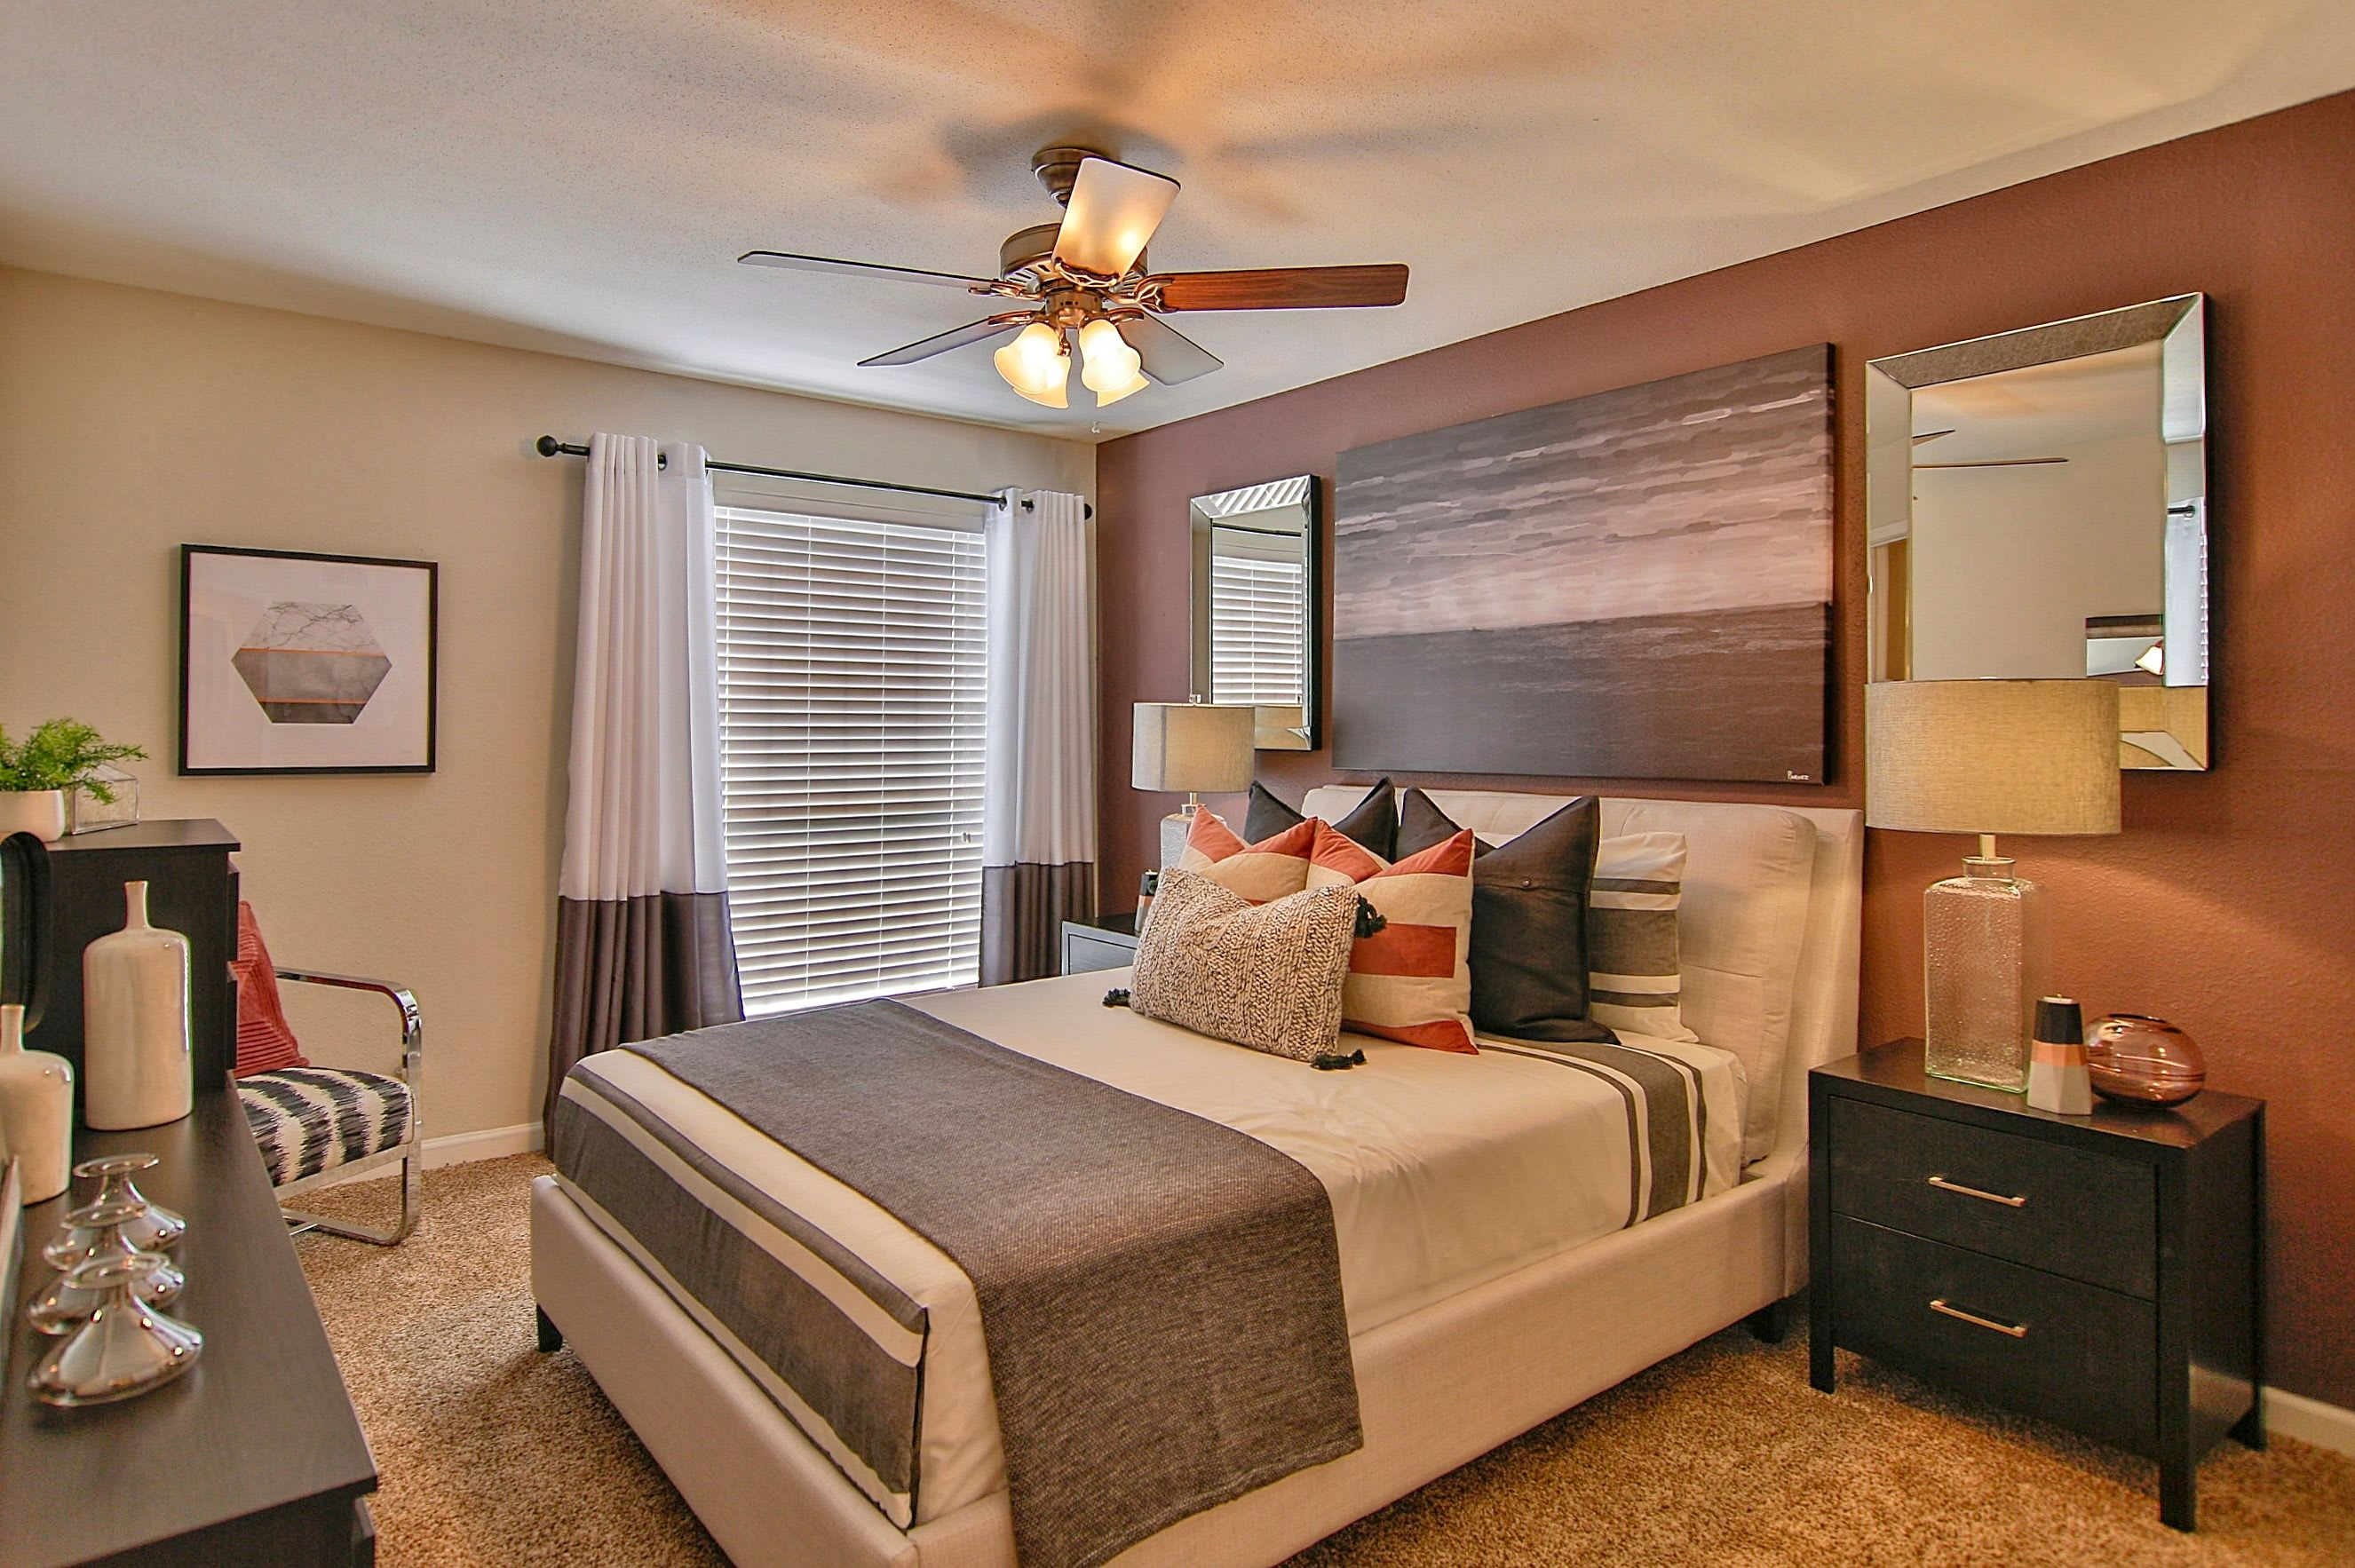 Main bedroom in model home at Allegro on Bell in Antioch, Tennessee